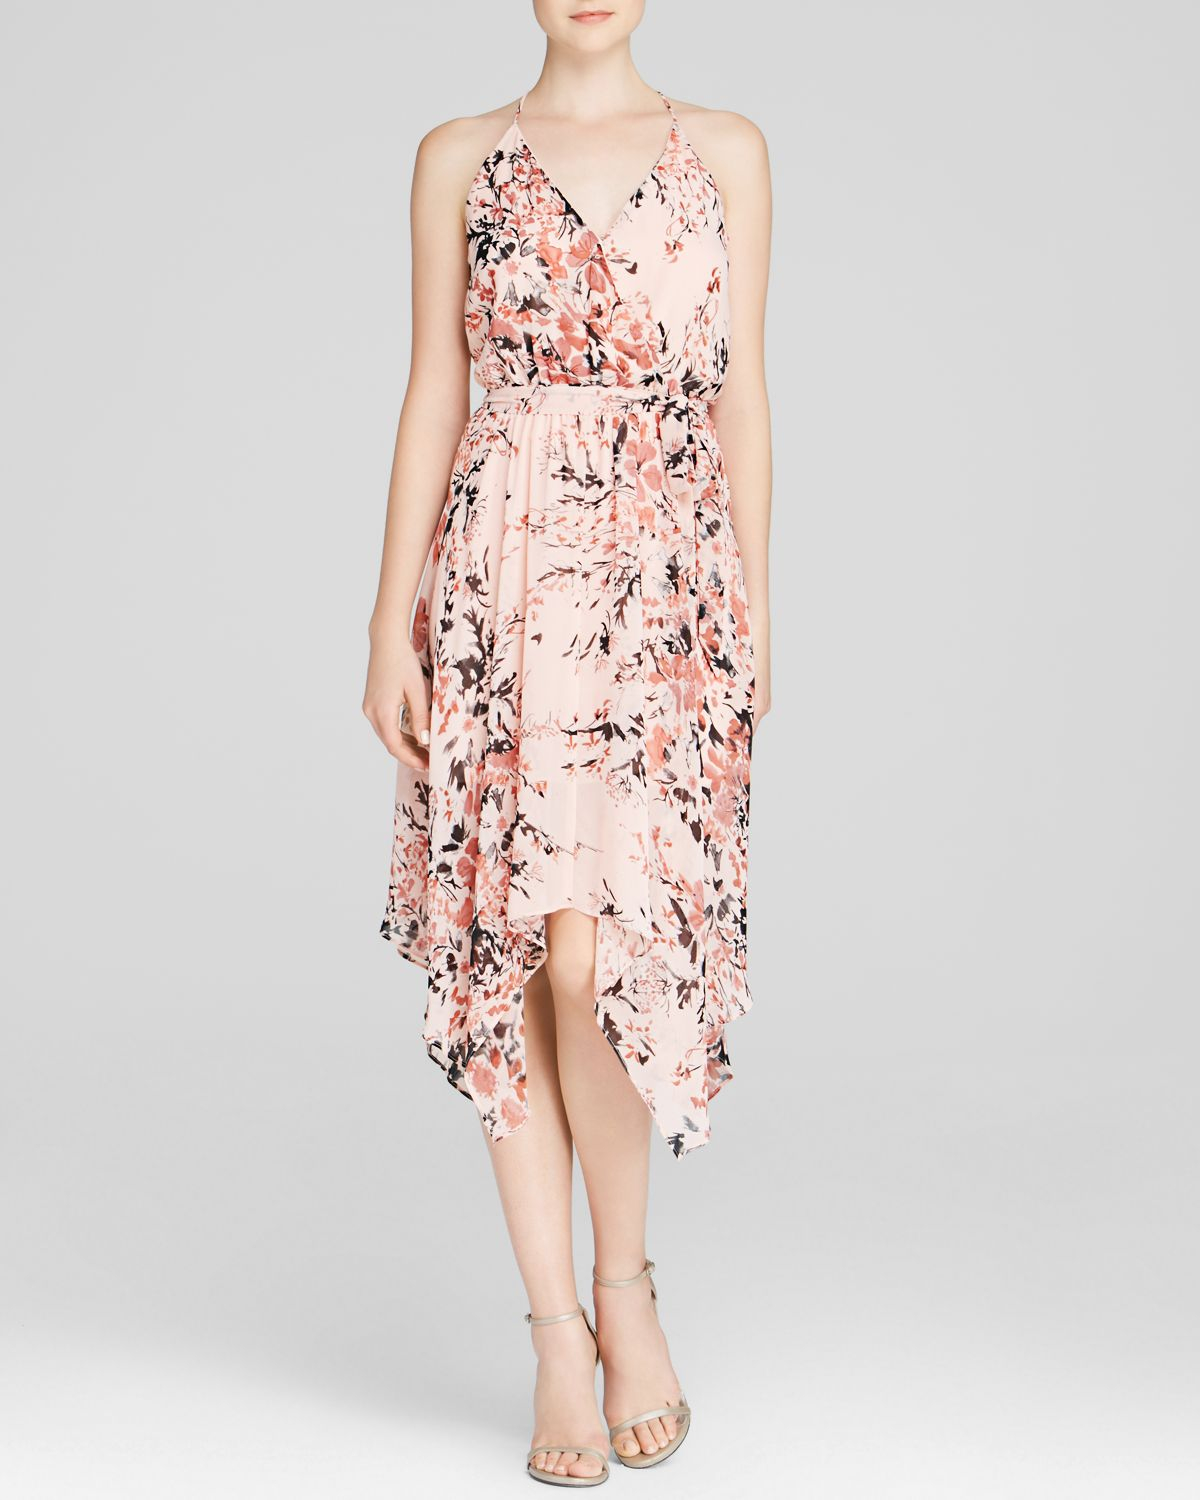 Bloomingdale's Dresses